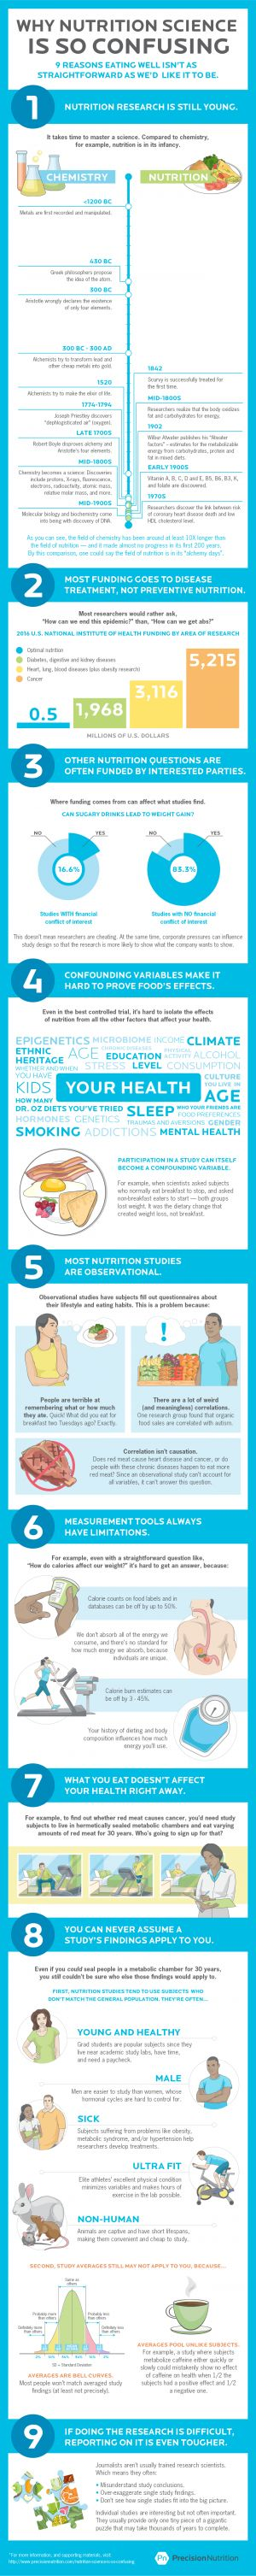 Why nutrition science is so confusing. 9 reasons eating well isn't as straightforward as we'd like it to be